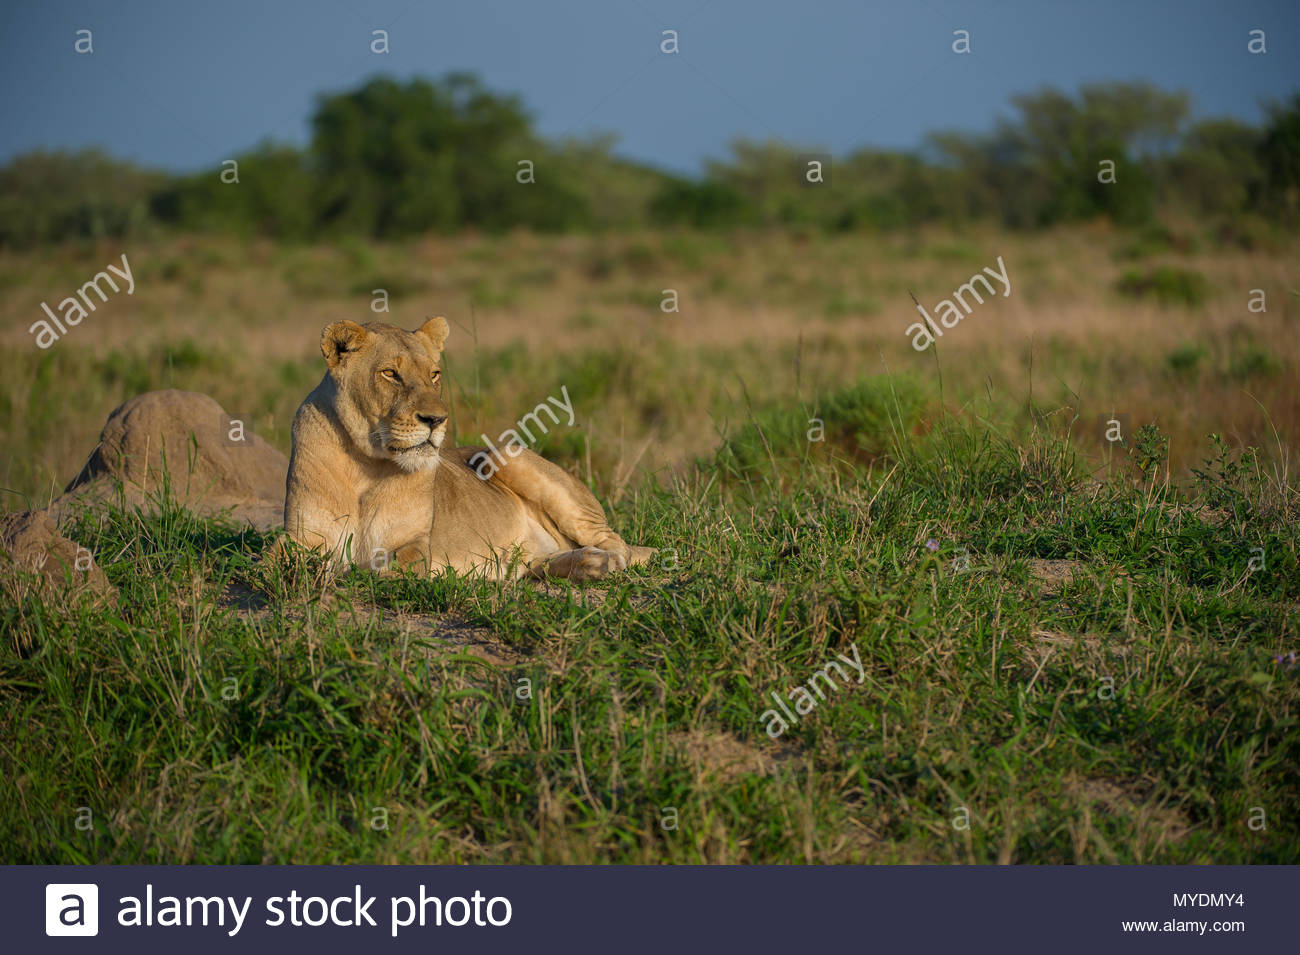 A female lion lies in the grass. - Stock Image